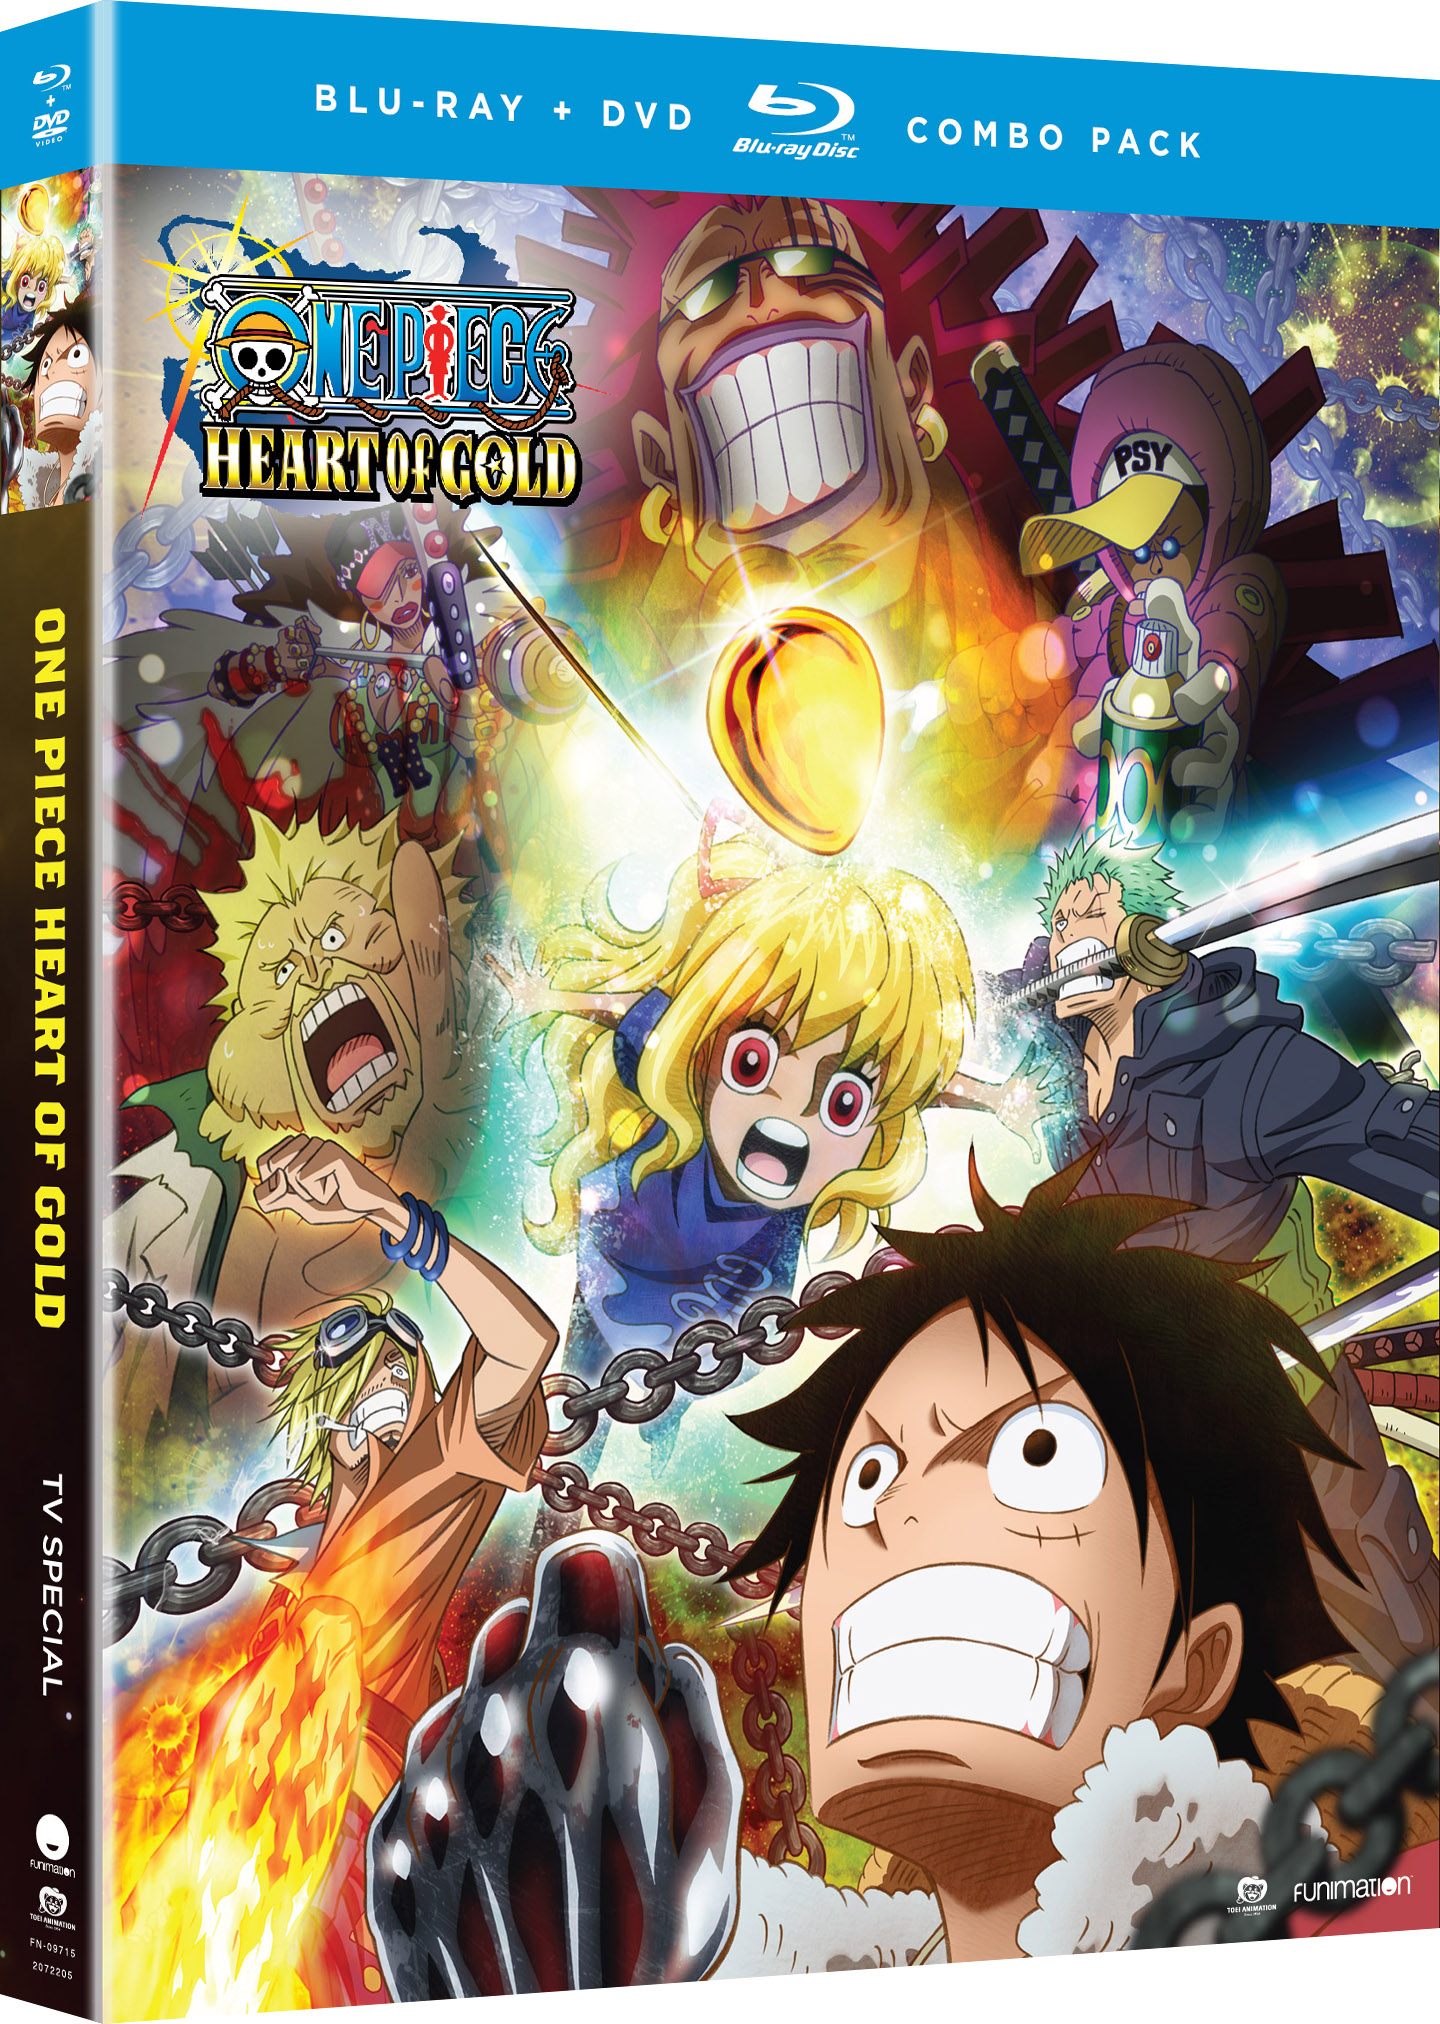 One Piece Heart of Gold TV Special Blu-ray/DVD 704400097157